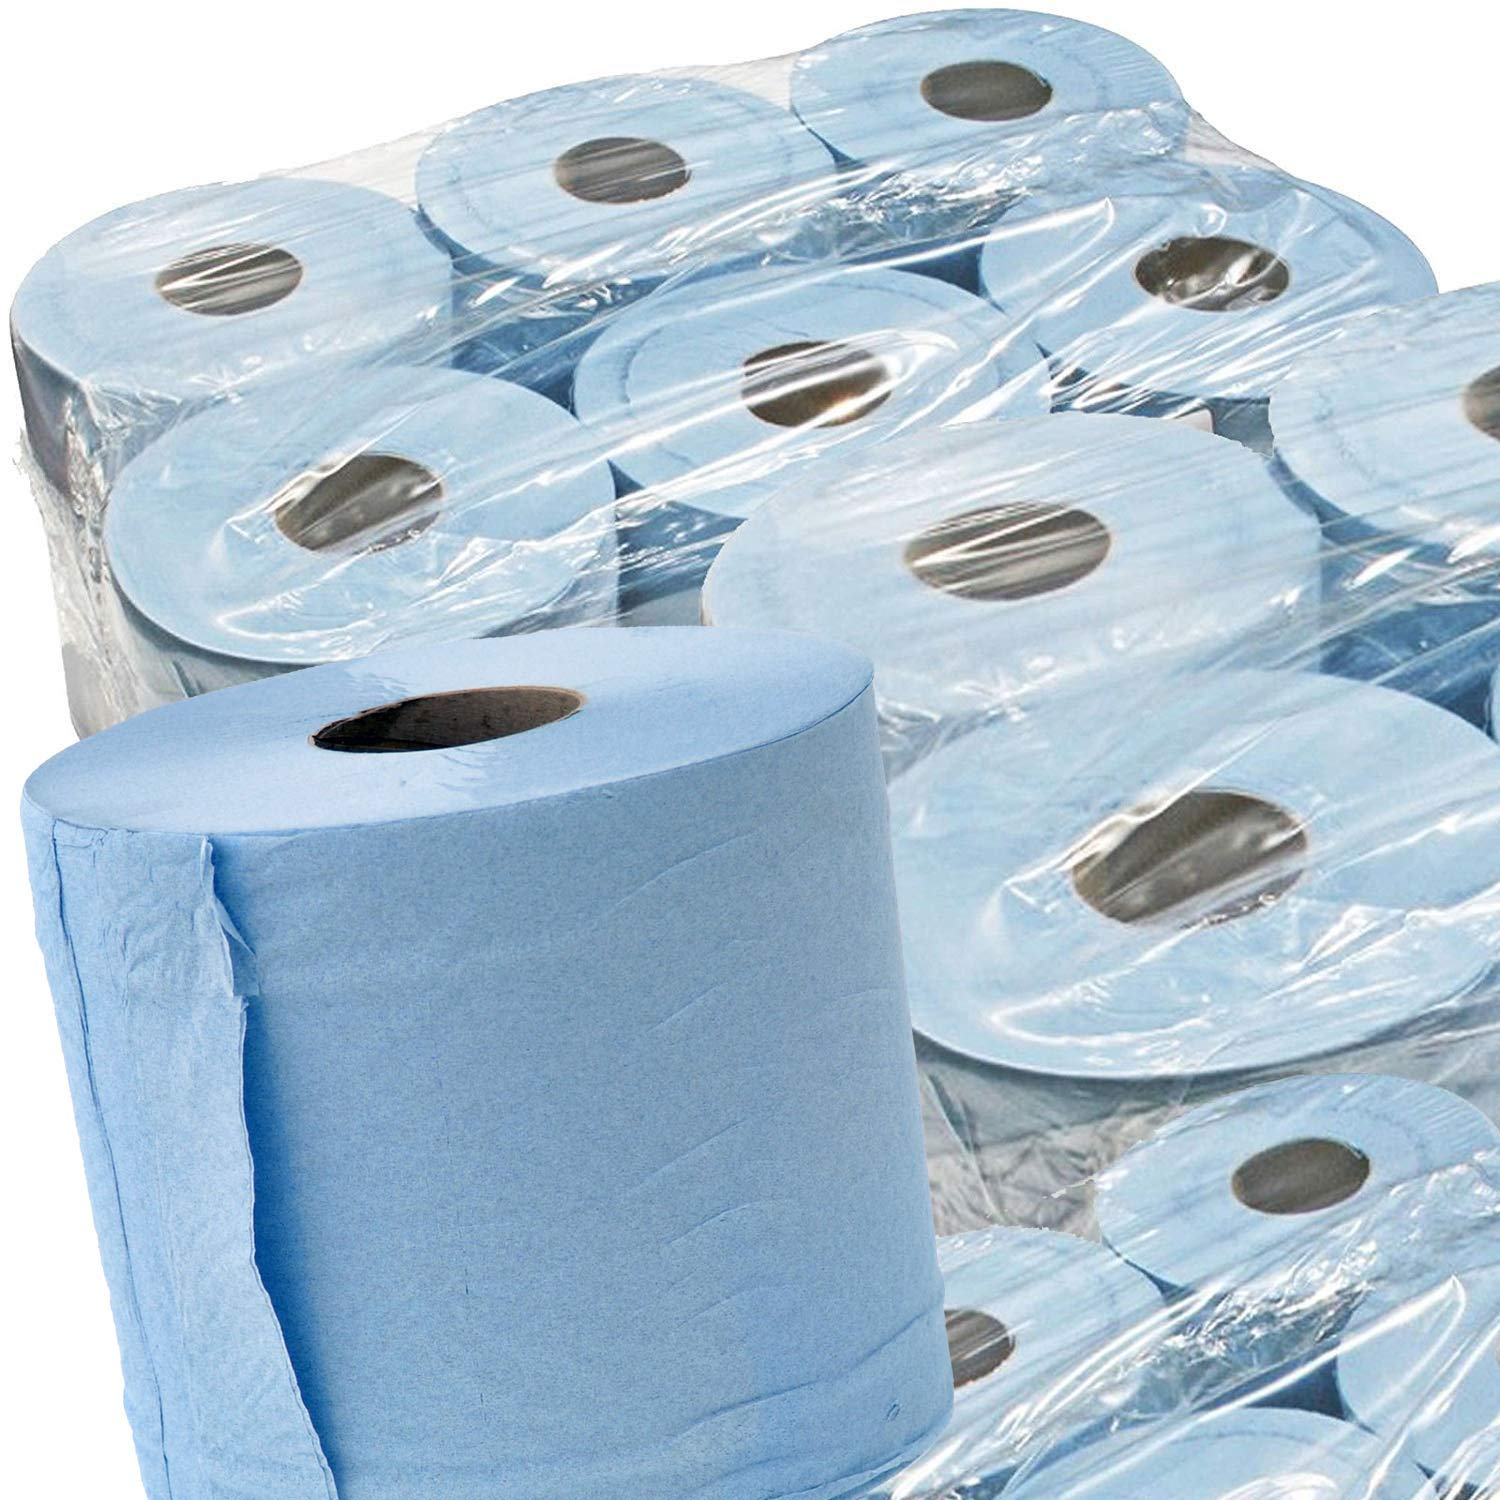 STAR SUPPLIES BLUE ROLL 2Ply centrefeed rolls, paper hand towels, absorbant, embossed